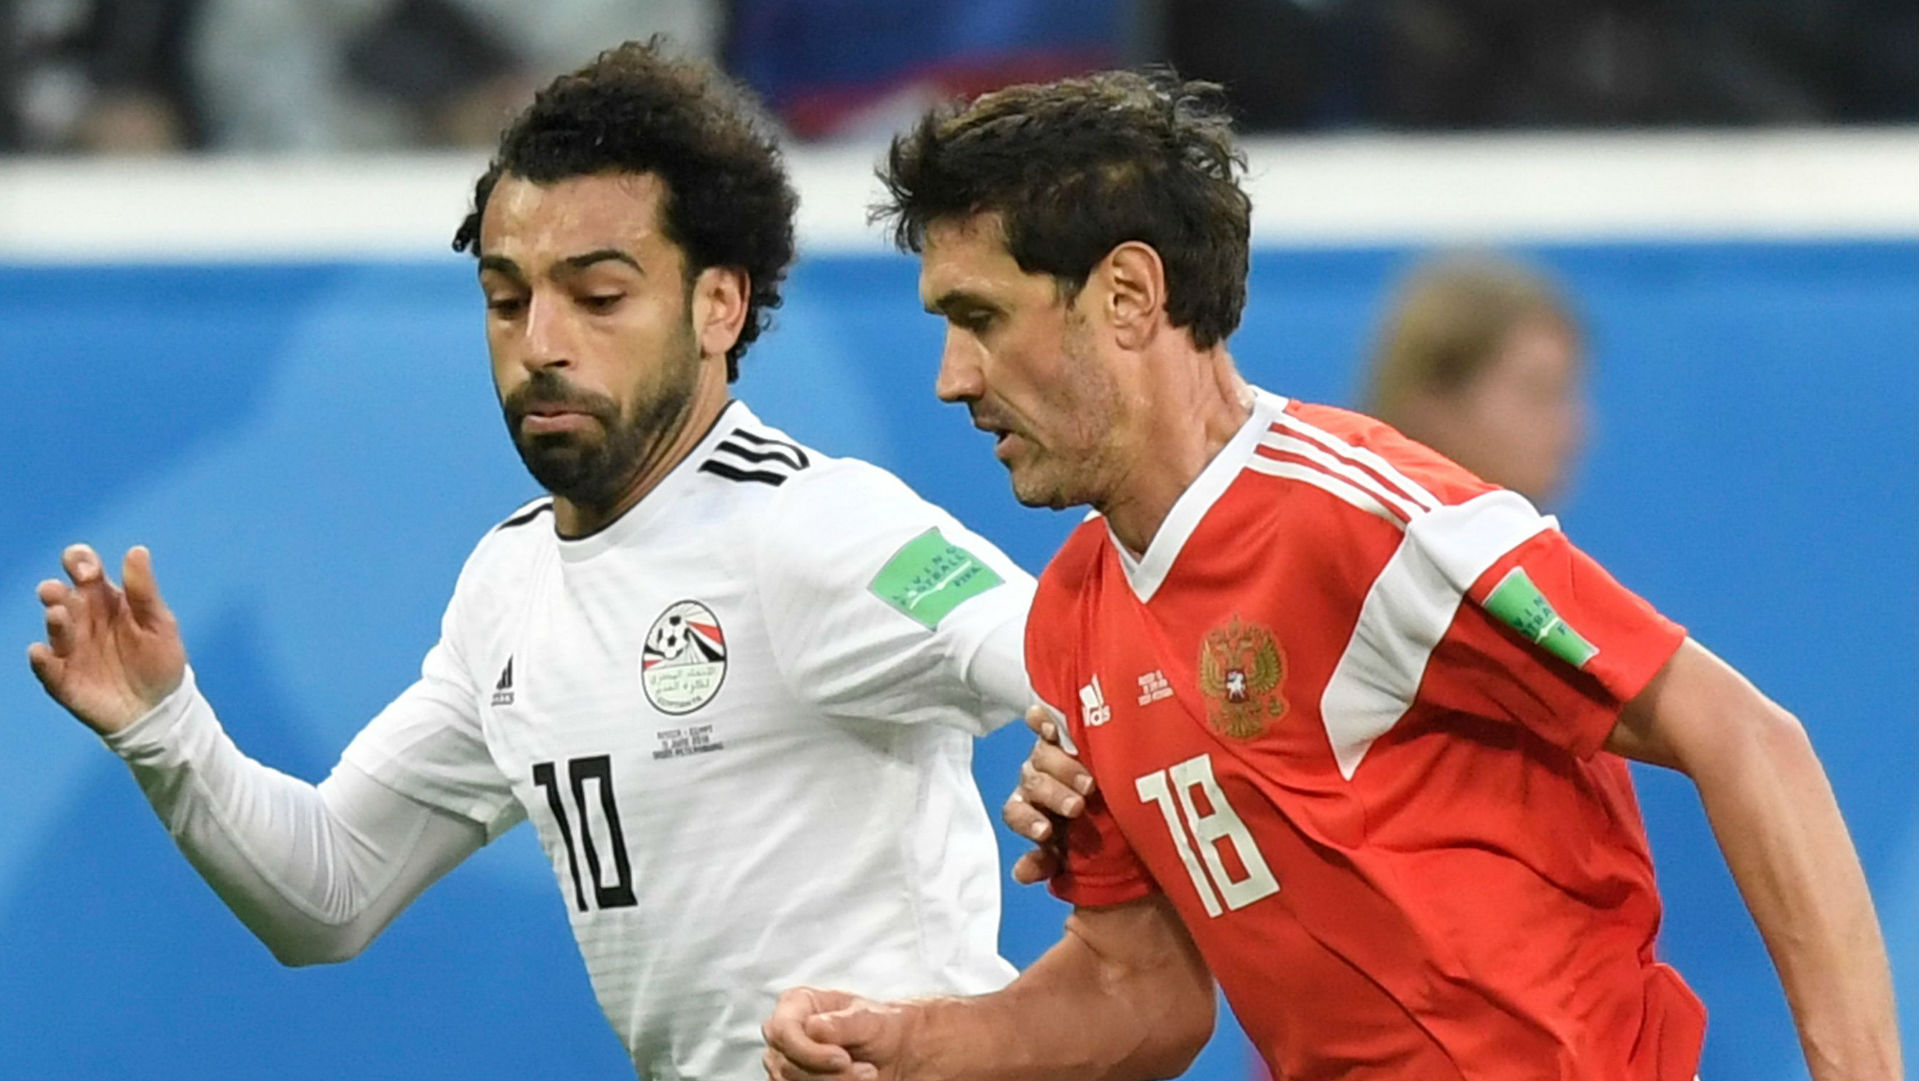 Mohamed Salah Egypt Yuri Zhirkov Russia World Cup